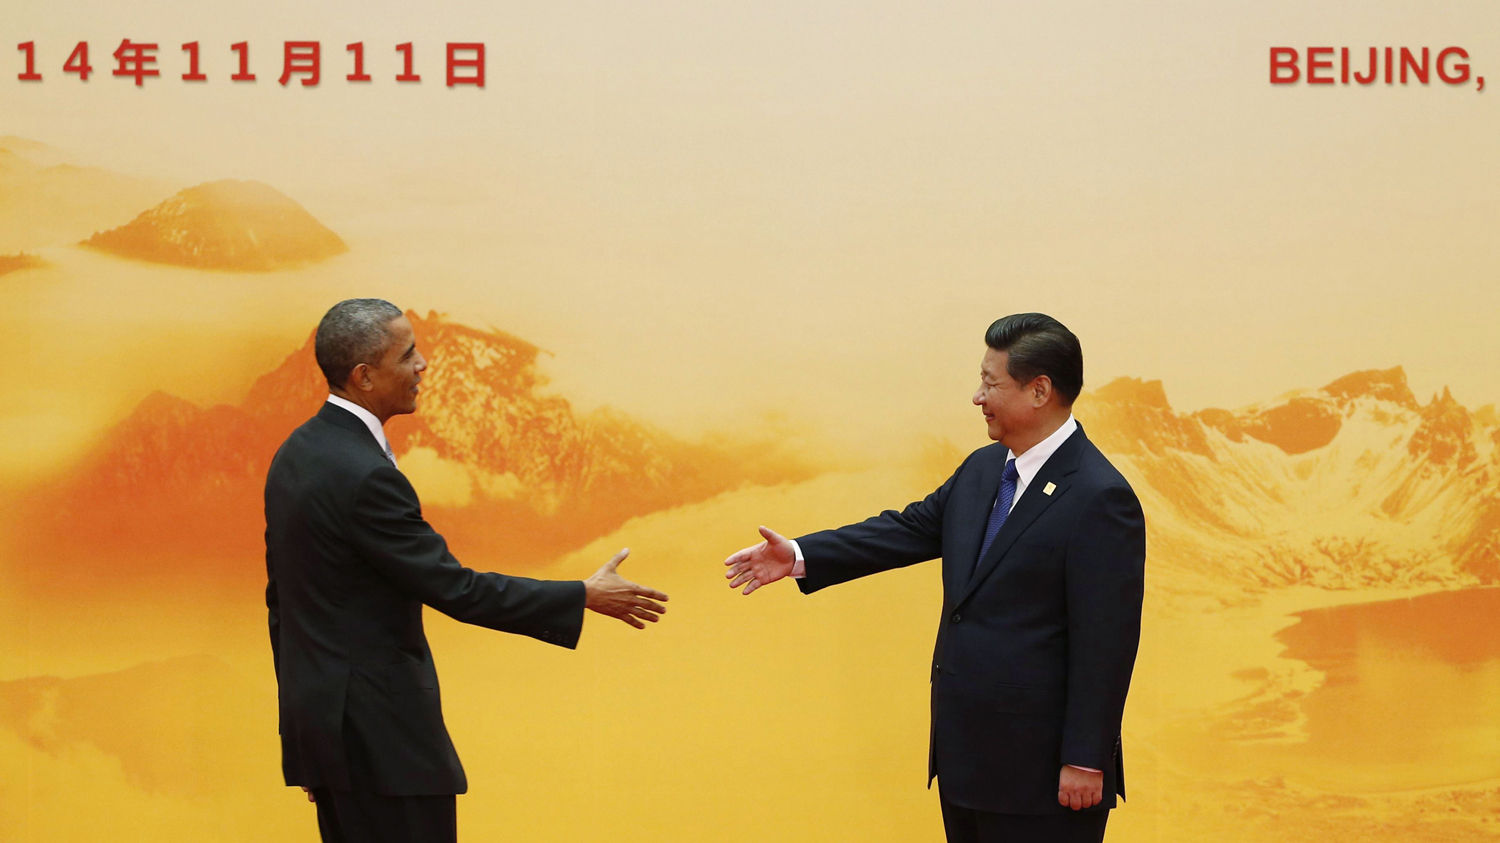 U.S. President Barack Obama (L) shakes hands with China's President Xi Jinping during the Asia Pacific Economic Cooperation (APEC) forum in Beijing on November 11, 2014.